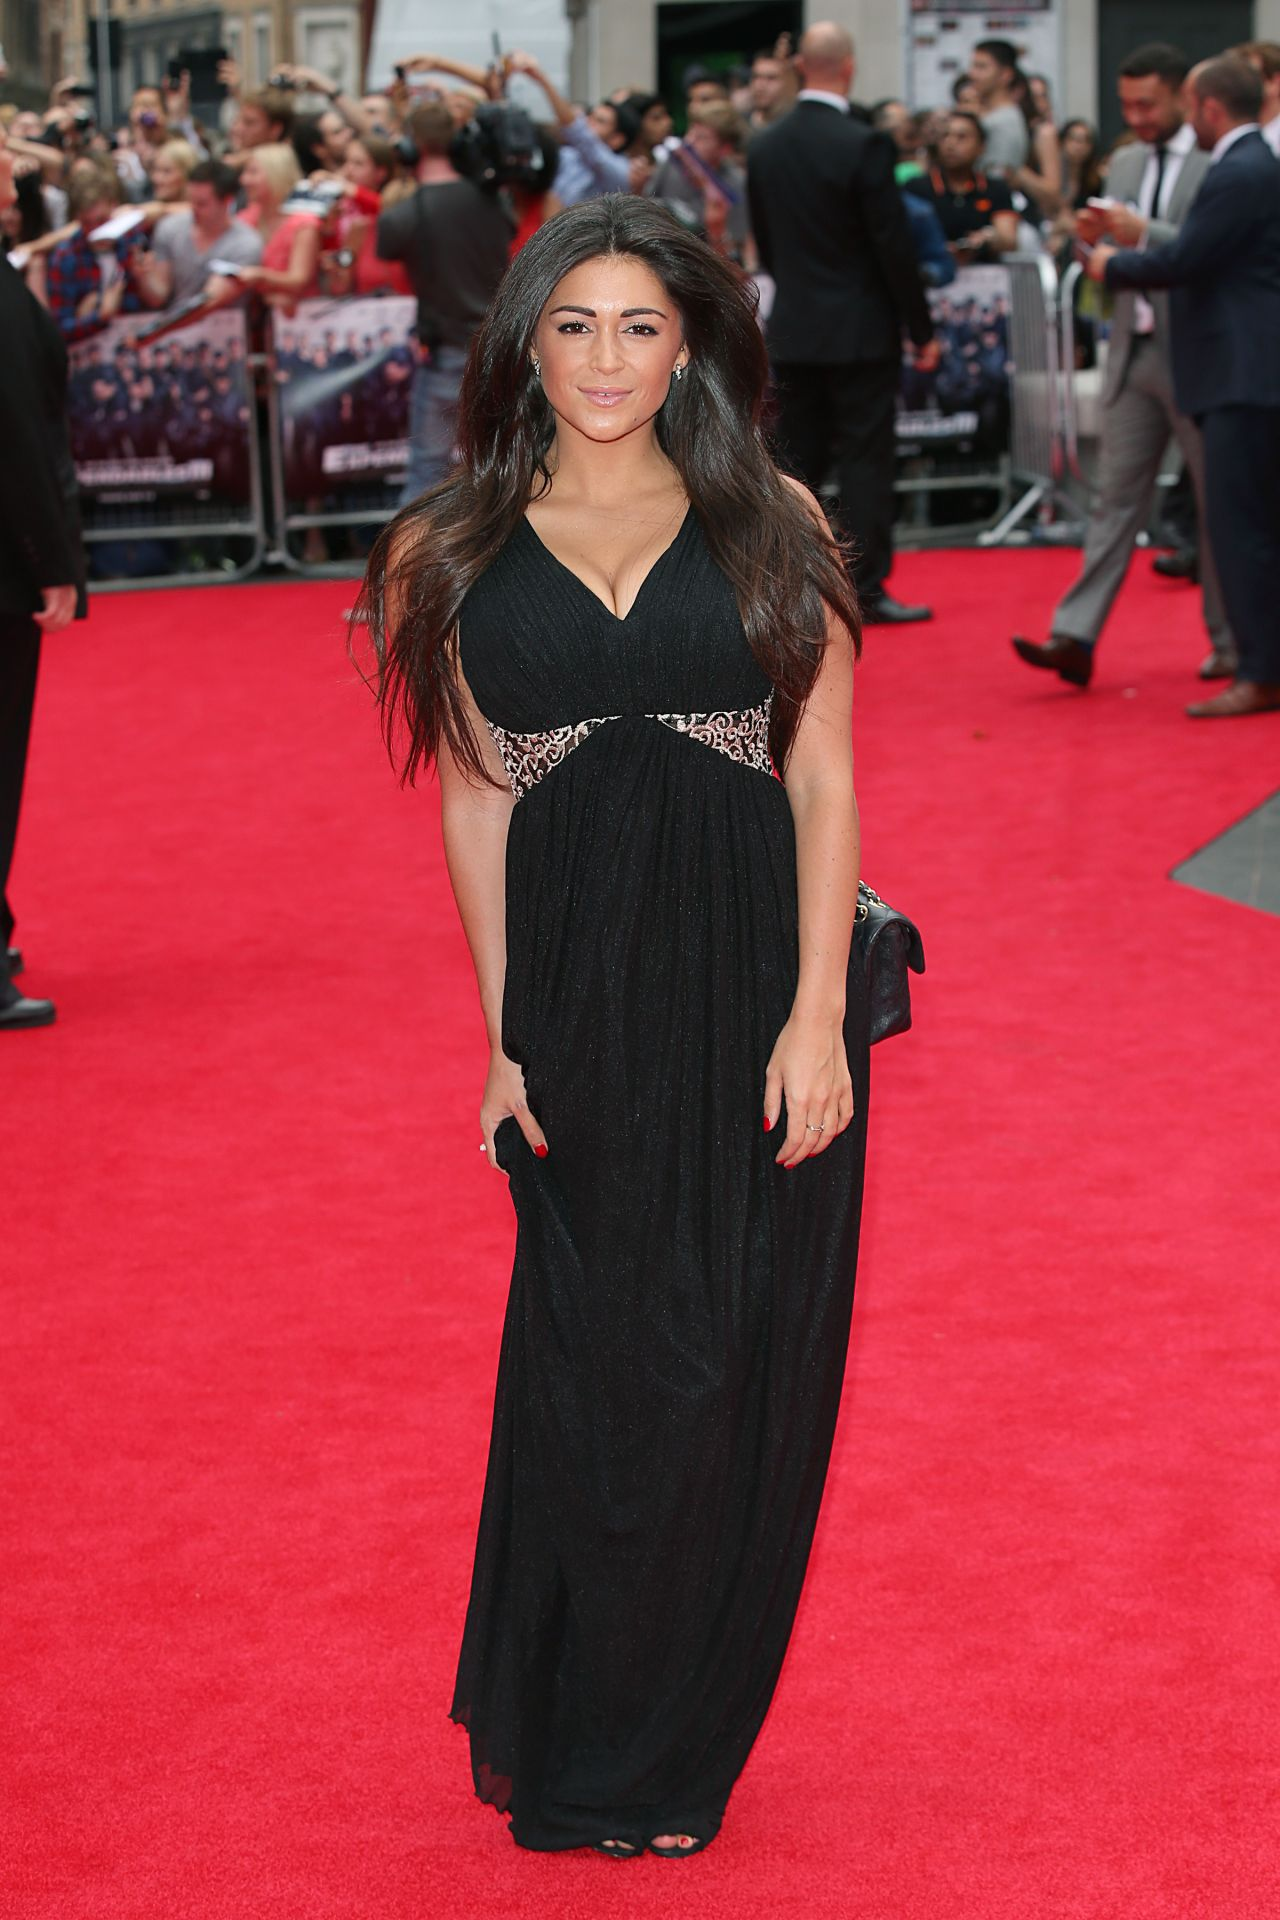 THE EXPENDABLES 3 World Premiere in London – Casey Batchelor